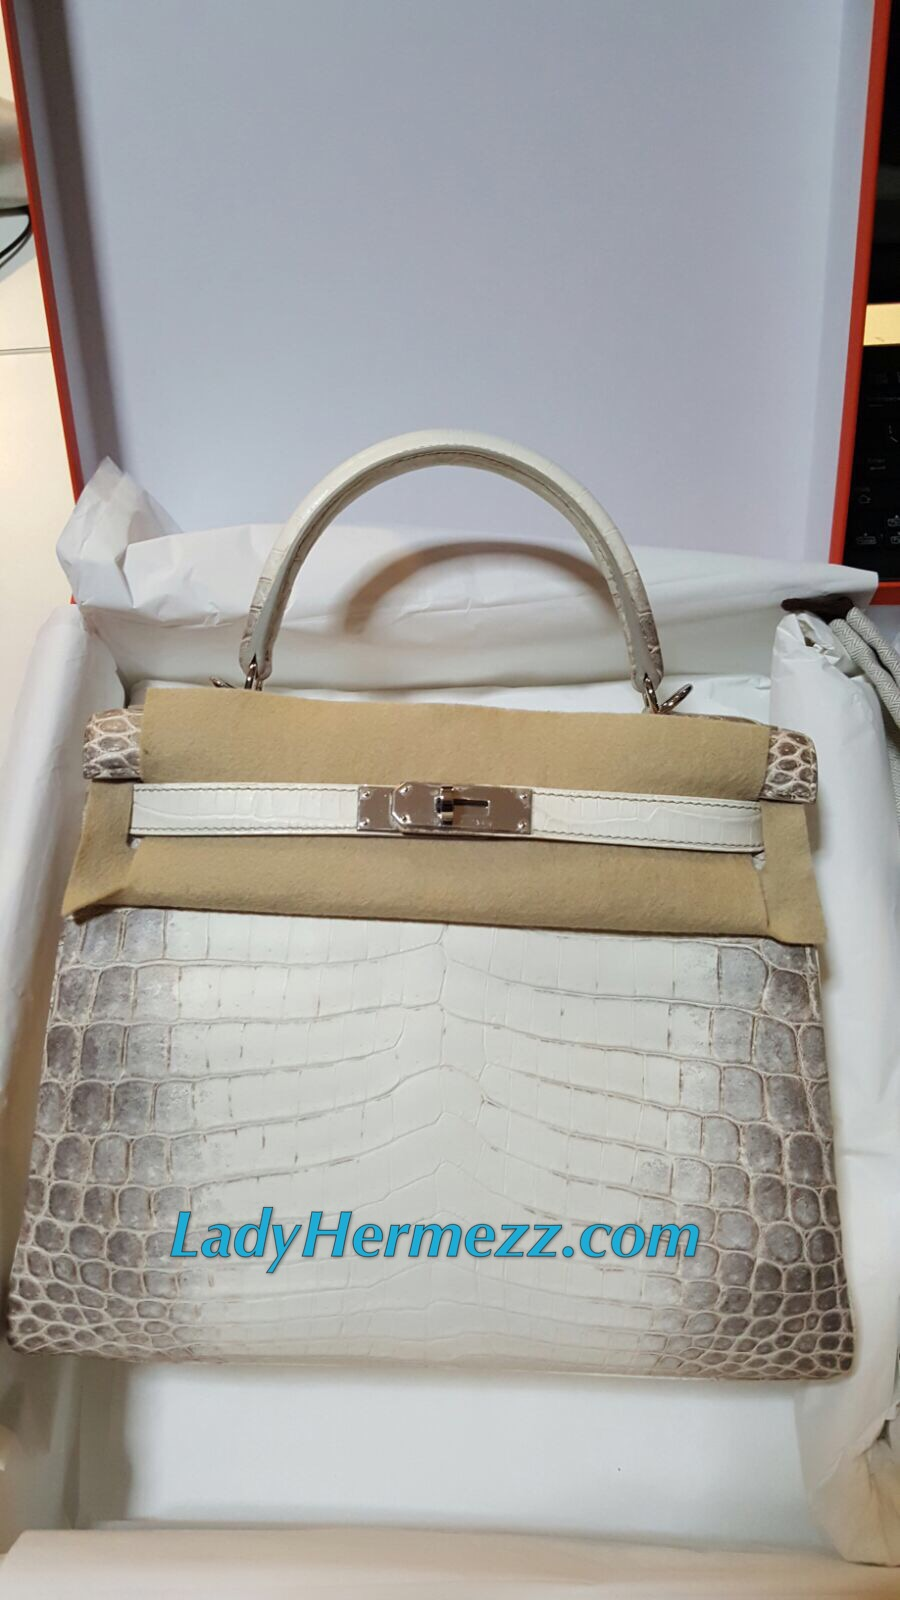 best affordable purses - LadyHermezz.Com - email: sales@LadyHermezz.Com